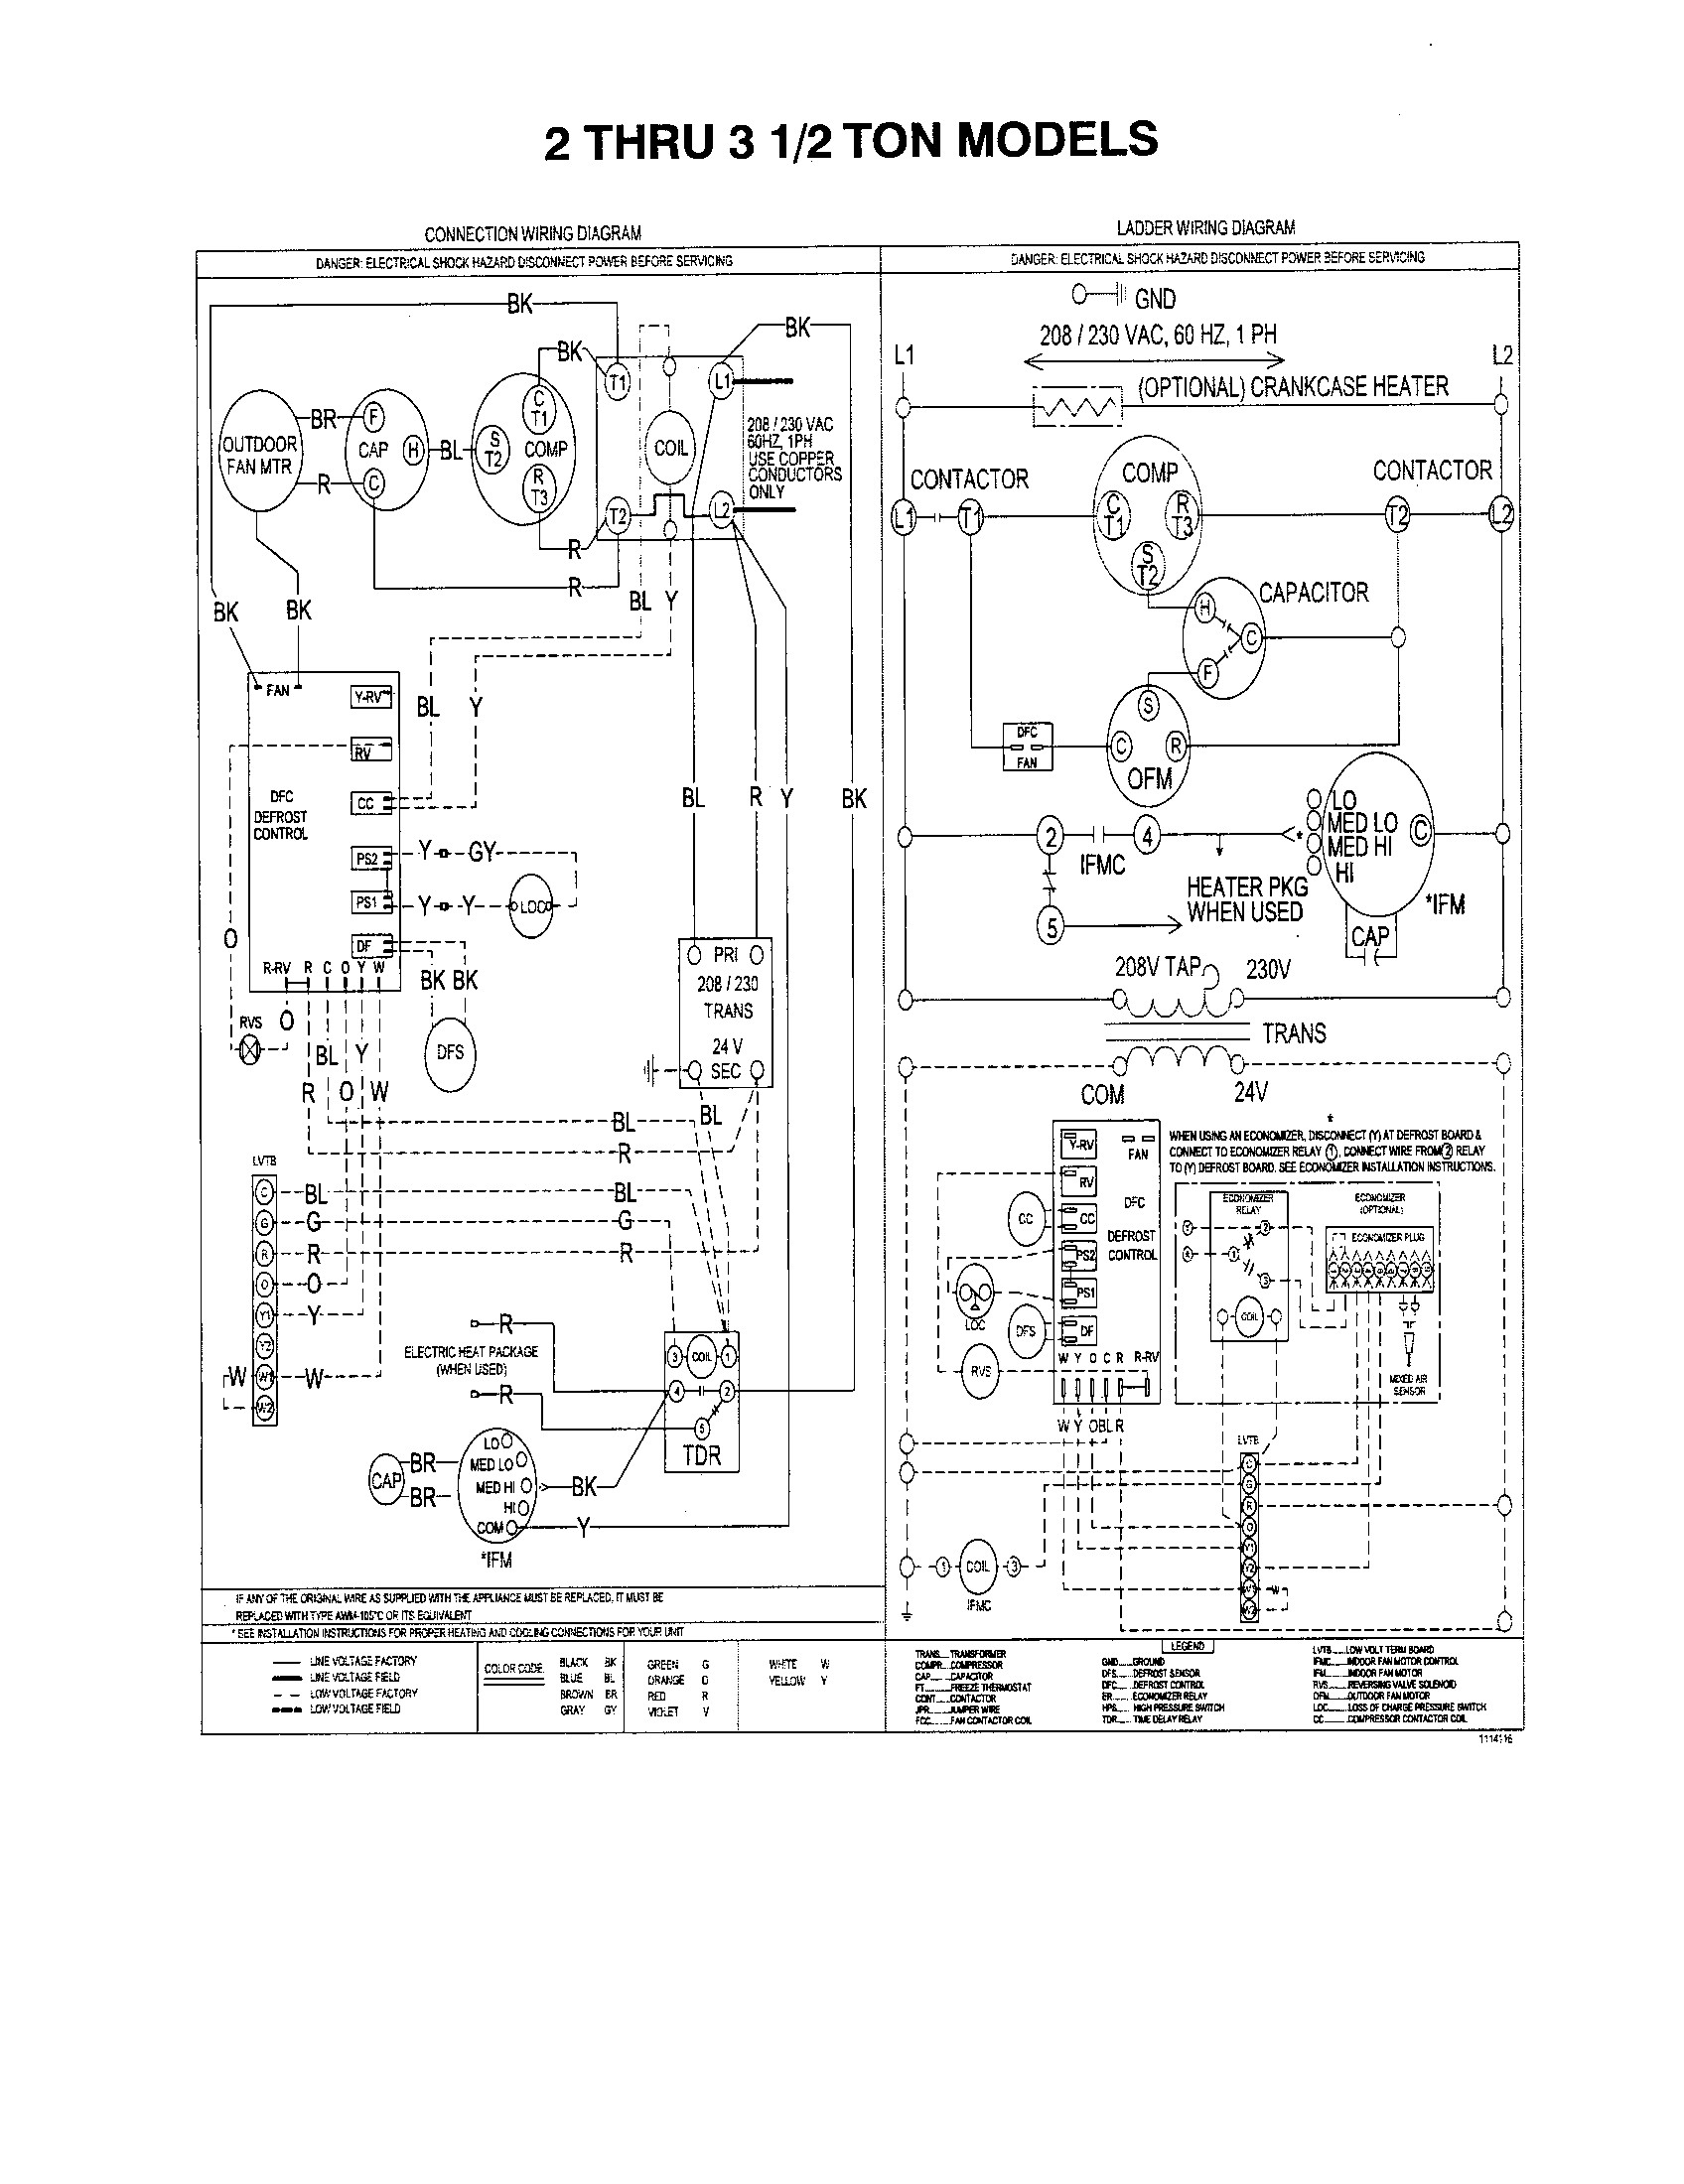 York heat pump wiring diagram best site wiring diagram york heat pump wiring diagrams wiring diagram database asfbconference2016 Choice Image